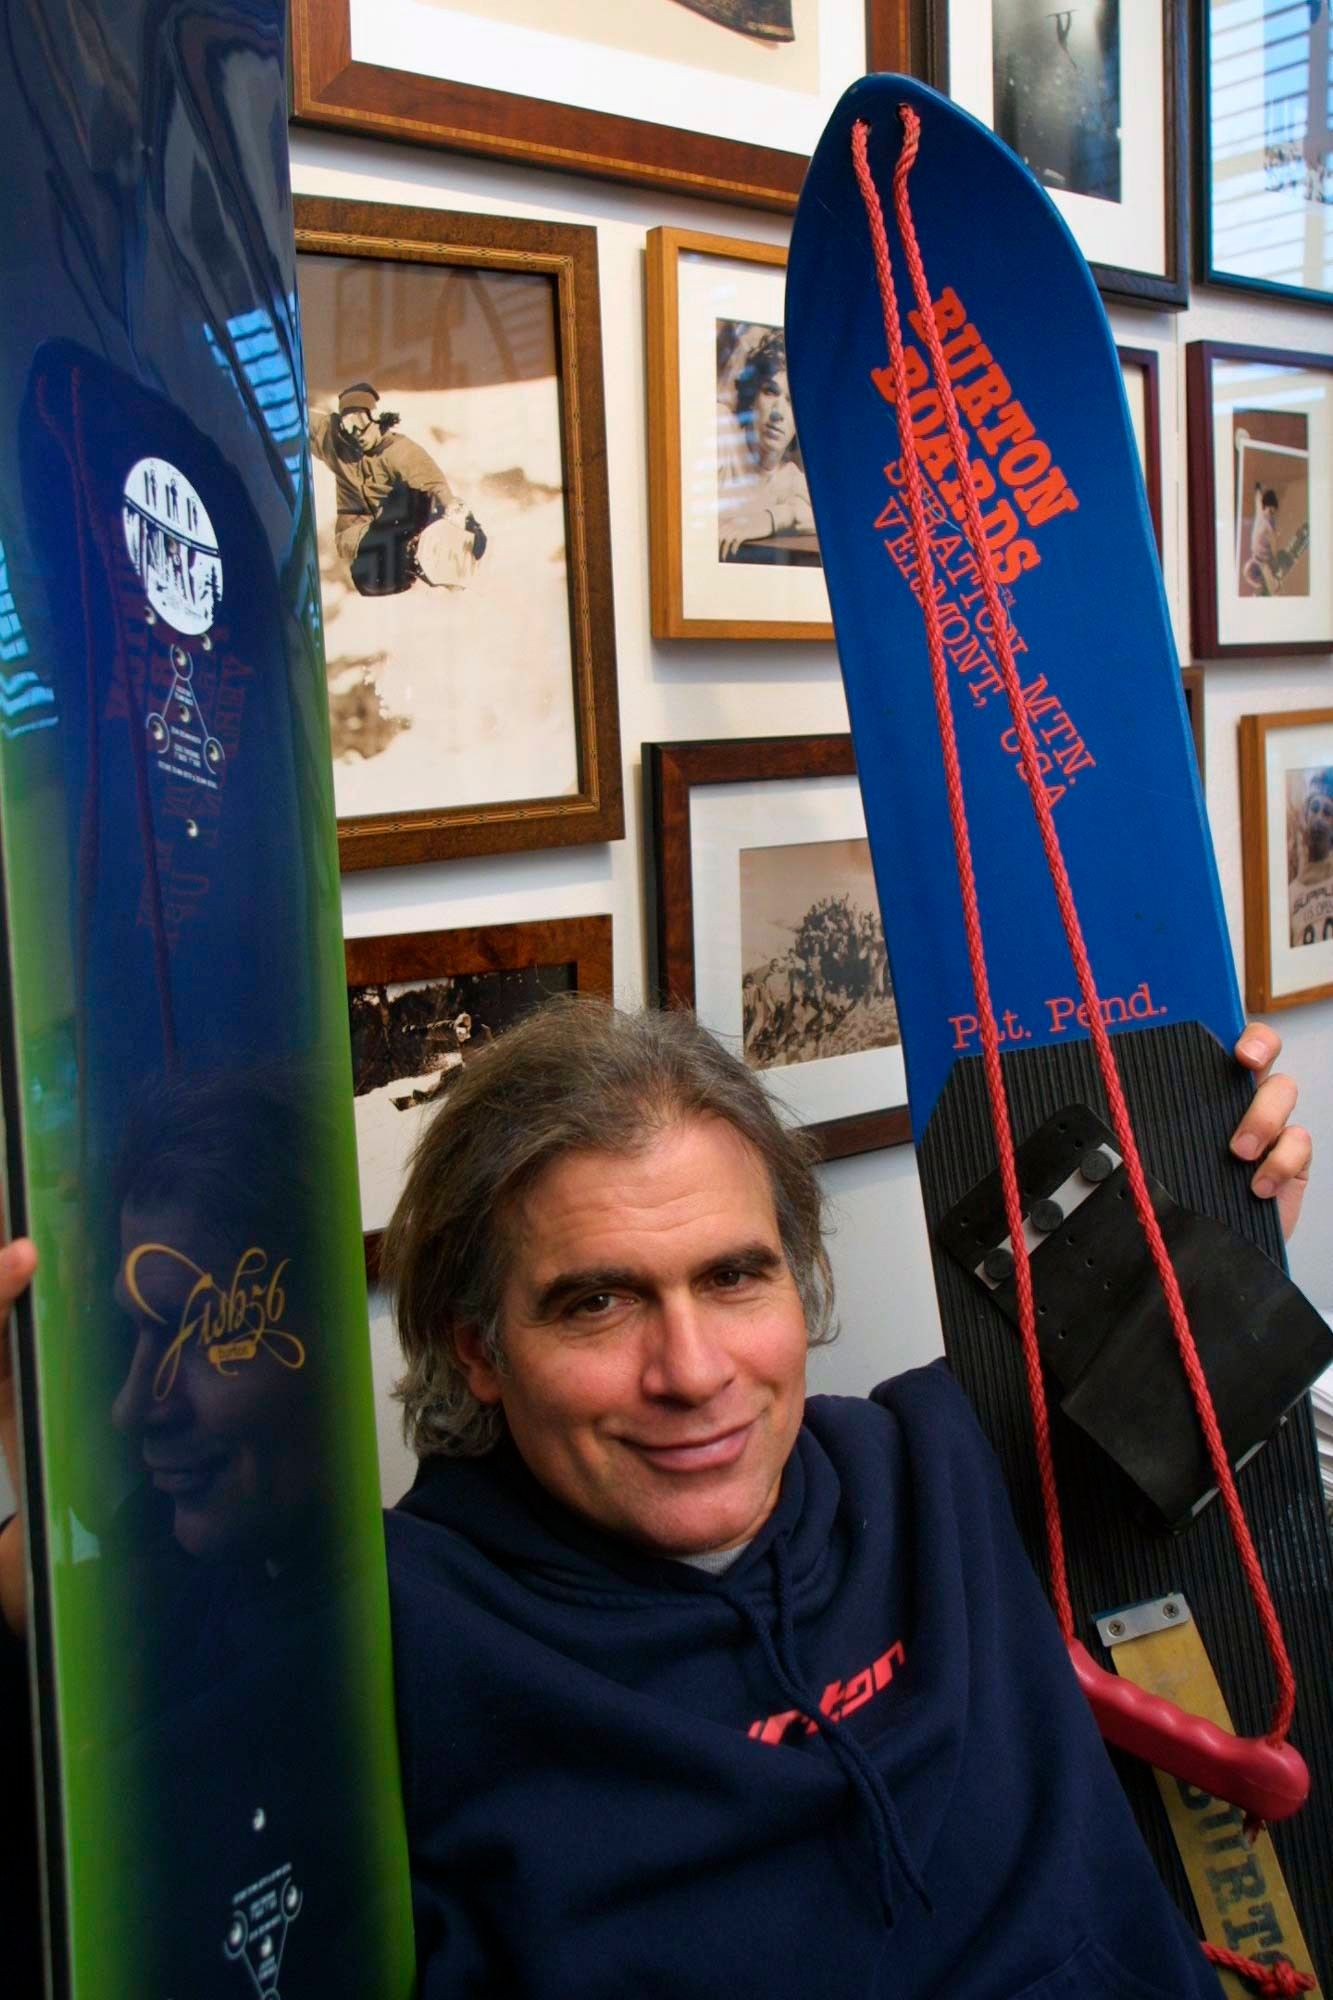 JAKE BURTON CARPENTER. Jake Burton Carpenter, owner of Burton Snowboards, shows an early model, right, and one of the newer snowboards, left, in his office in Burlington, Vt. Carpenter, the innovator who brought the snowboard to the masses and helped turn the sport into a billion-dollar business, has died after a recurring bout with cancer. He was 65. Officials from the company he founded, Burton Snowboards, told The Associated Press of his deathObit Jake Burton, BURLINGTON, USA - 08 Mar 2002